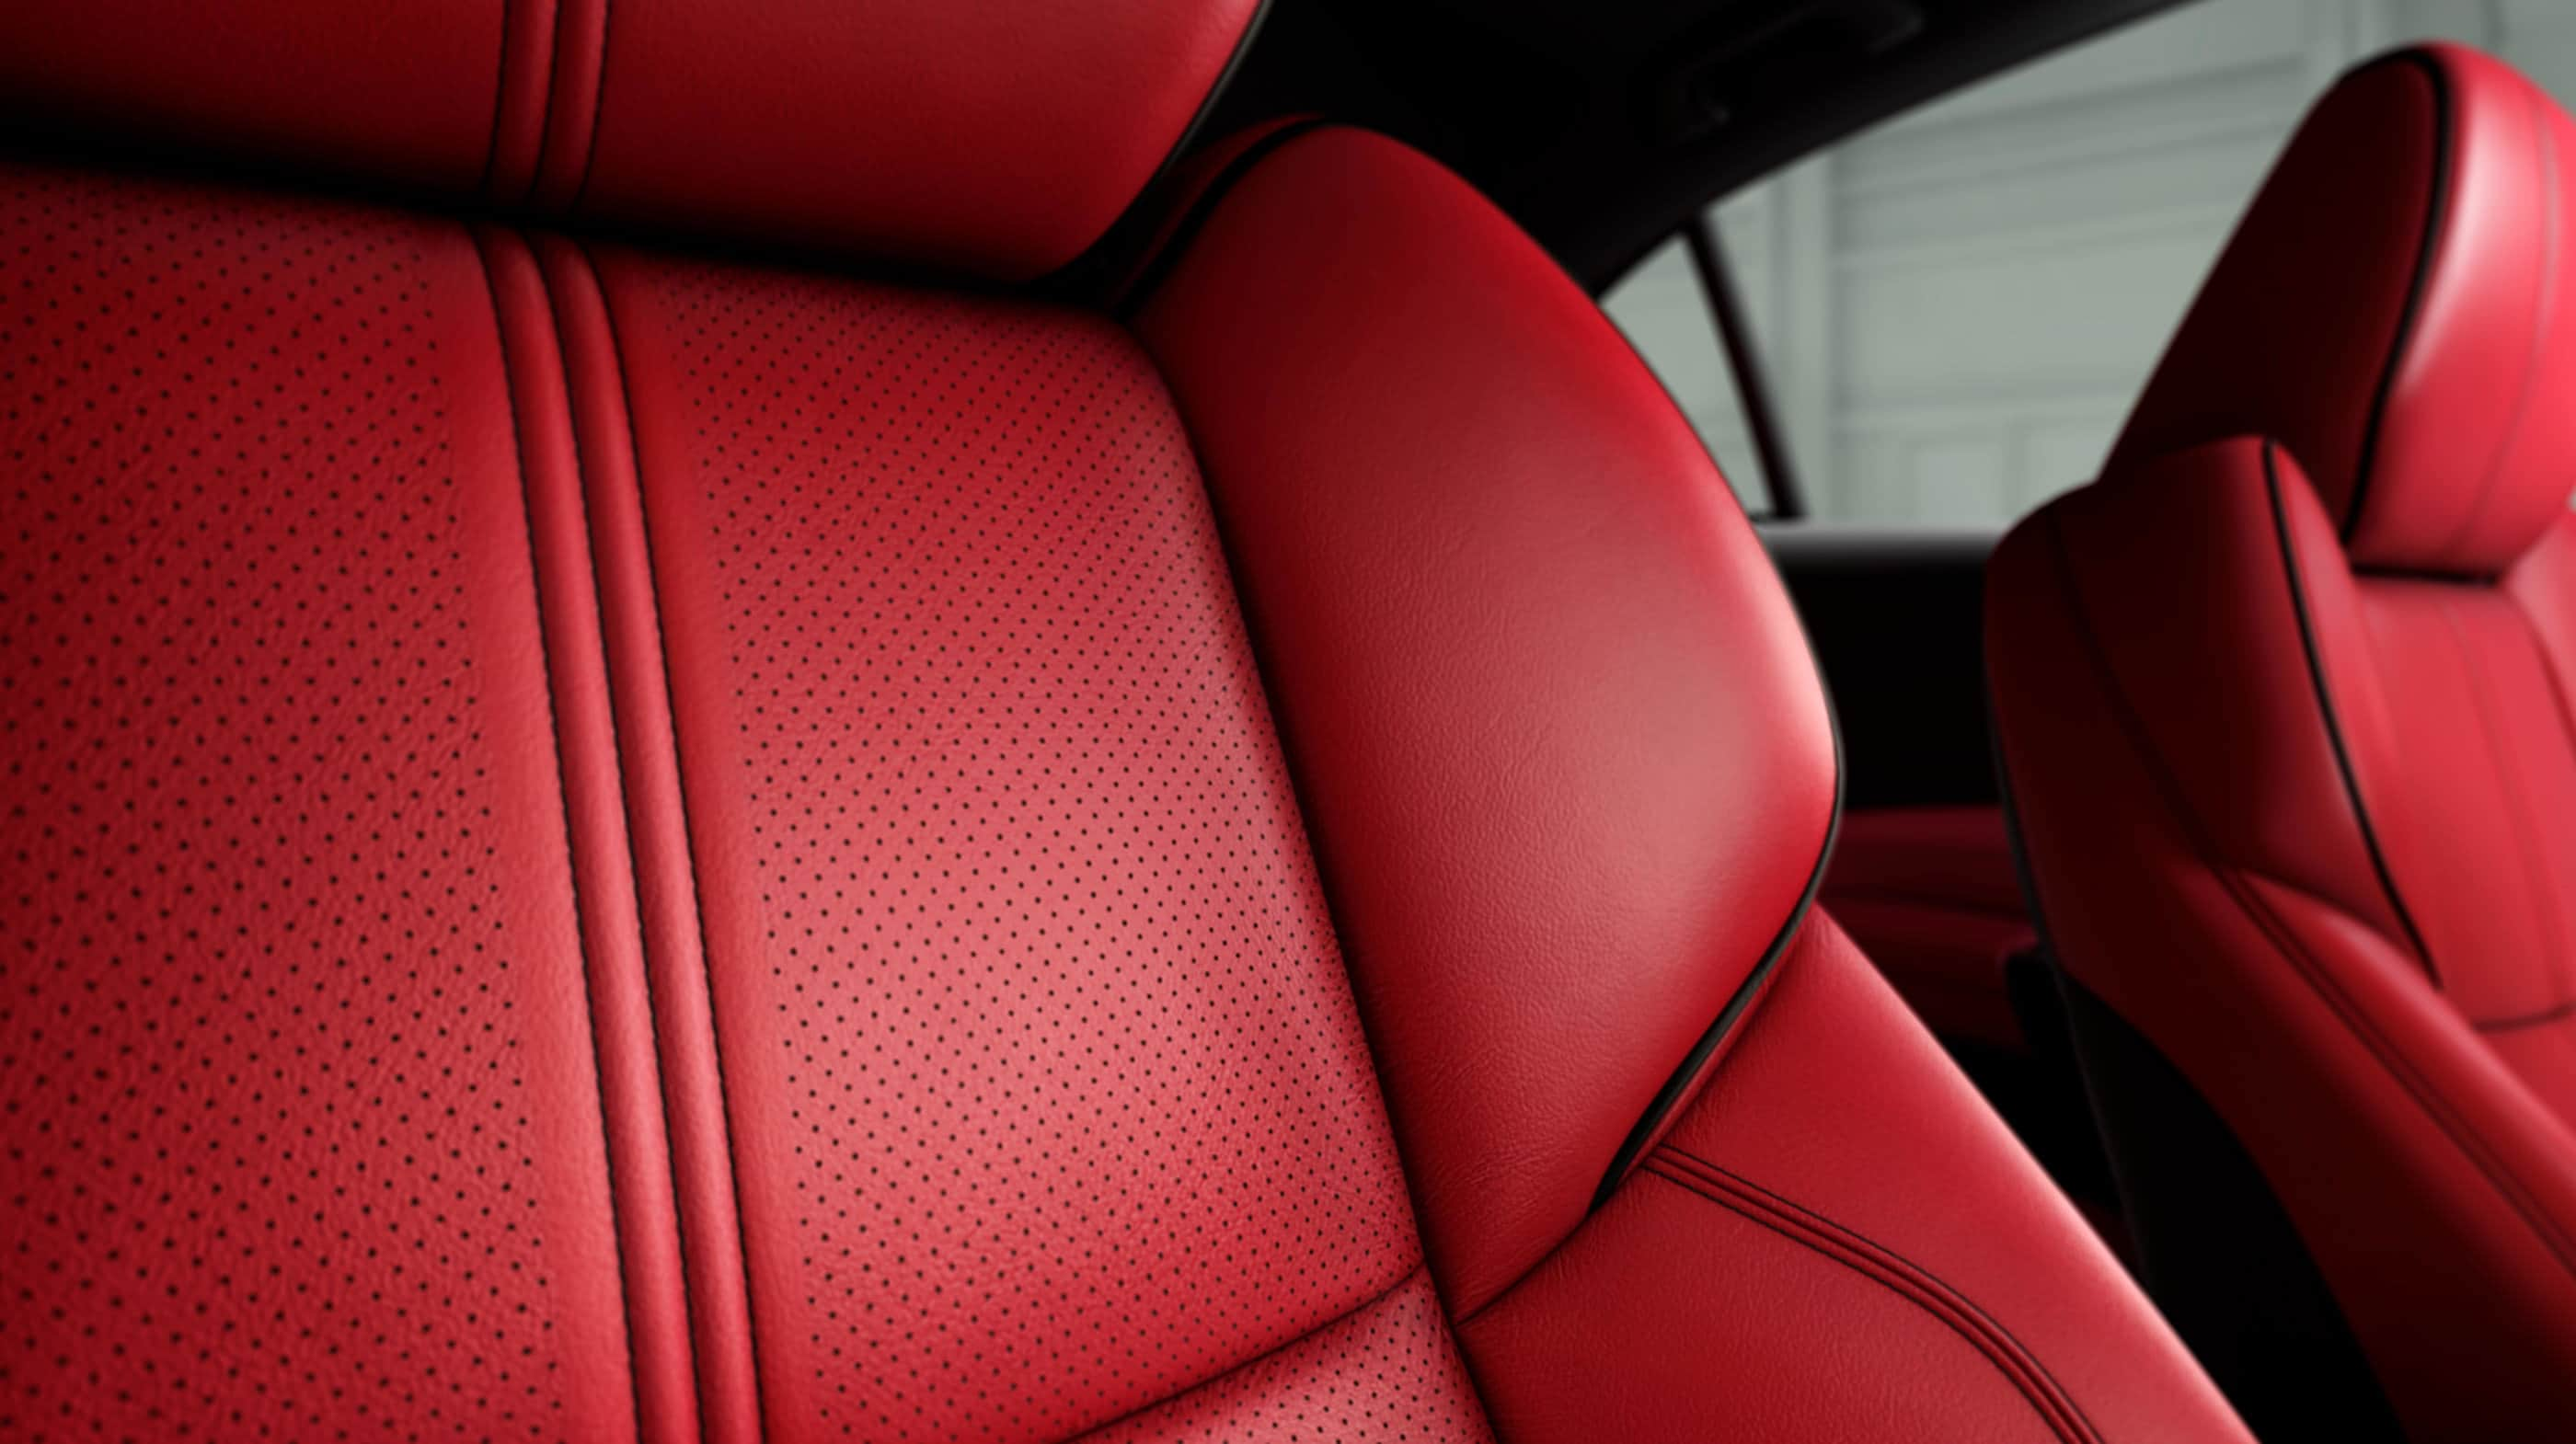 Stylish Seats in the 2020 Acura TLX